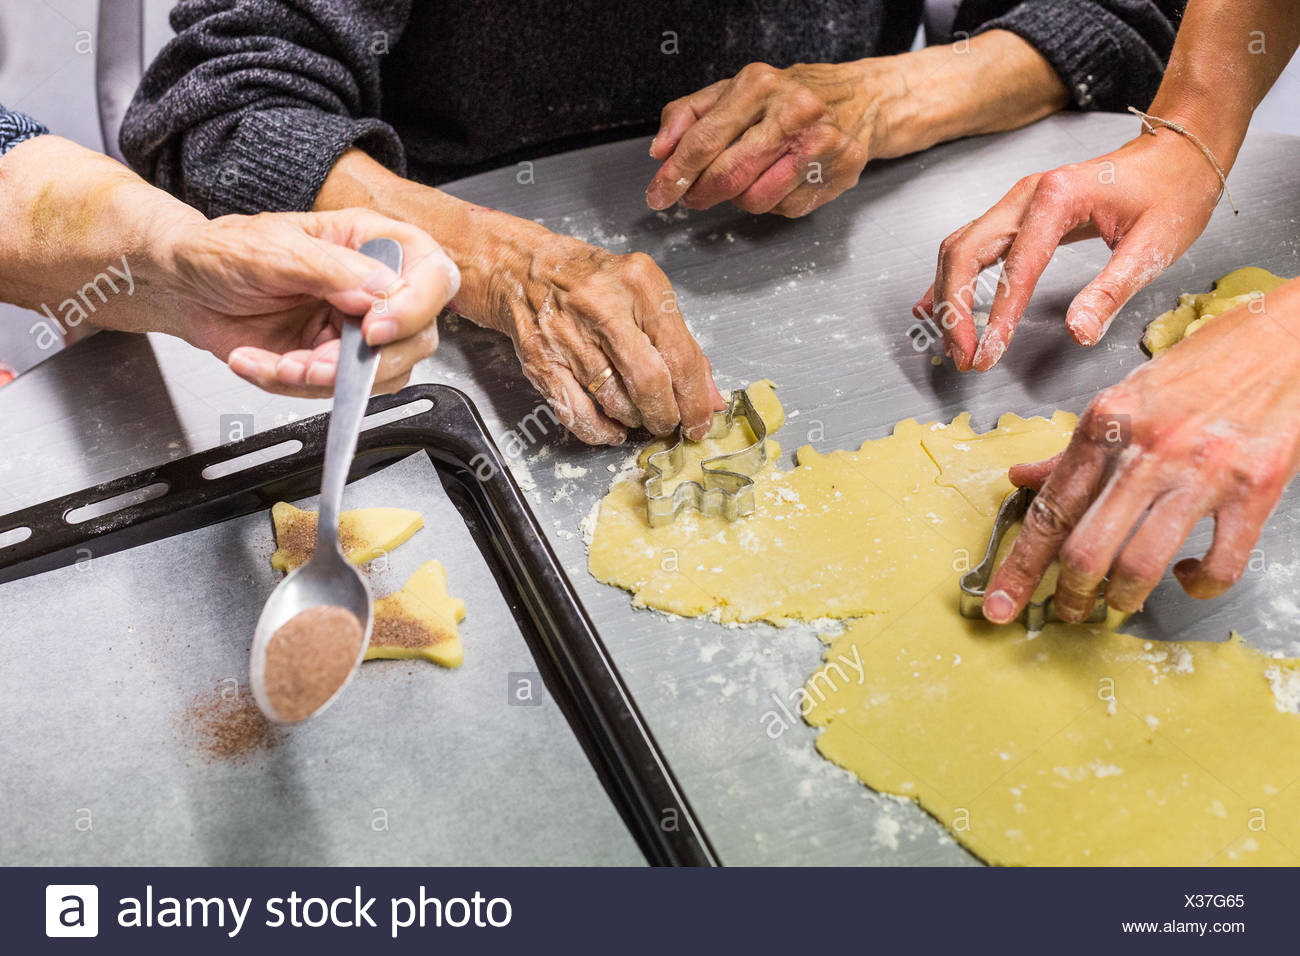 Evaluation stay in the Cognitive-Behavioral Unit (CCU) of a pychogeriatric care center specialized in Alzheimer's disease and related disorders, Here, - Stock Image